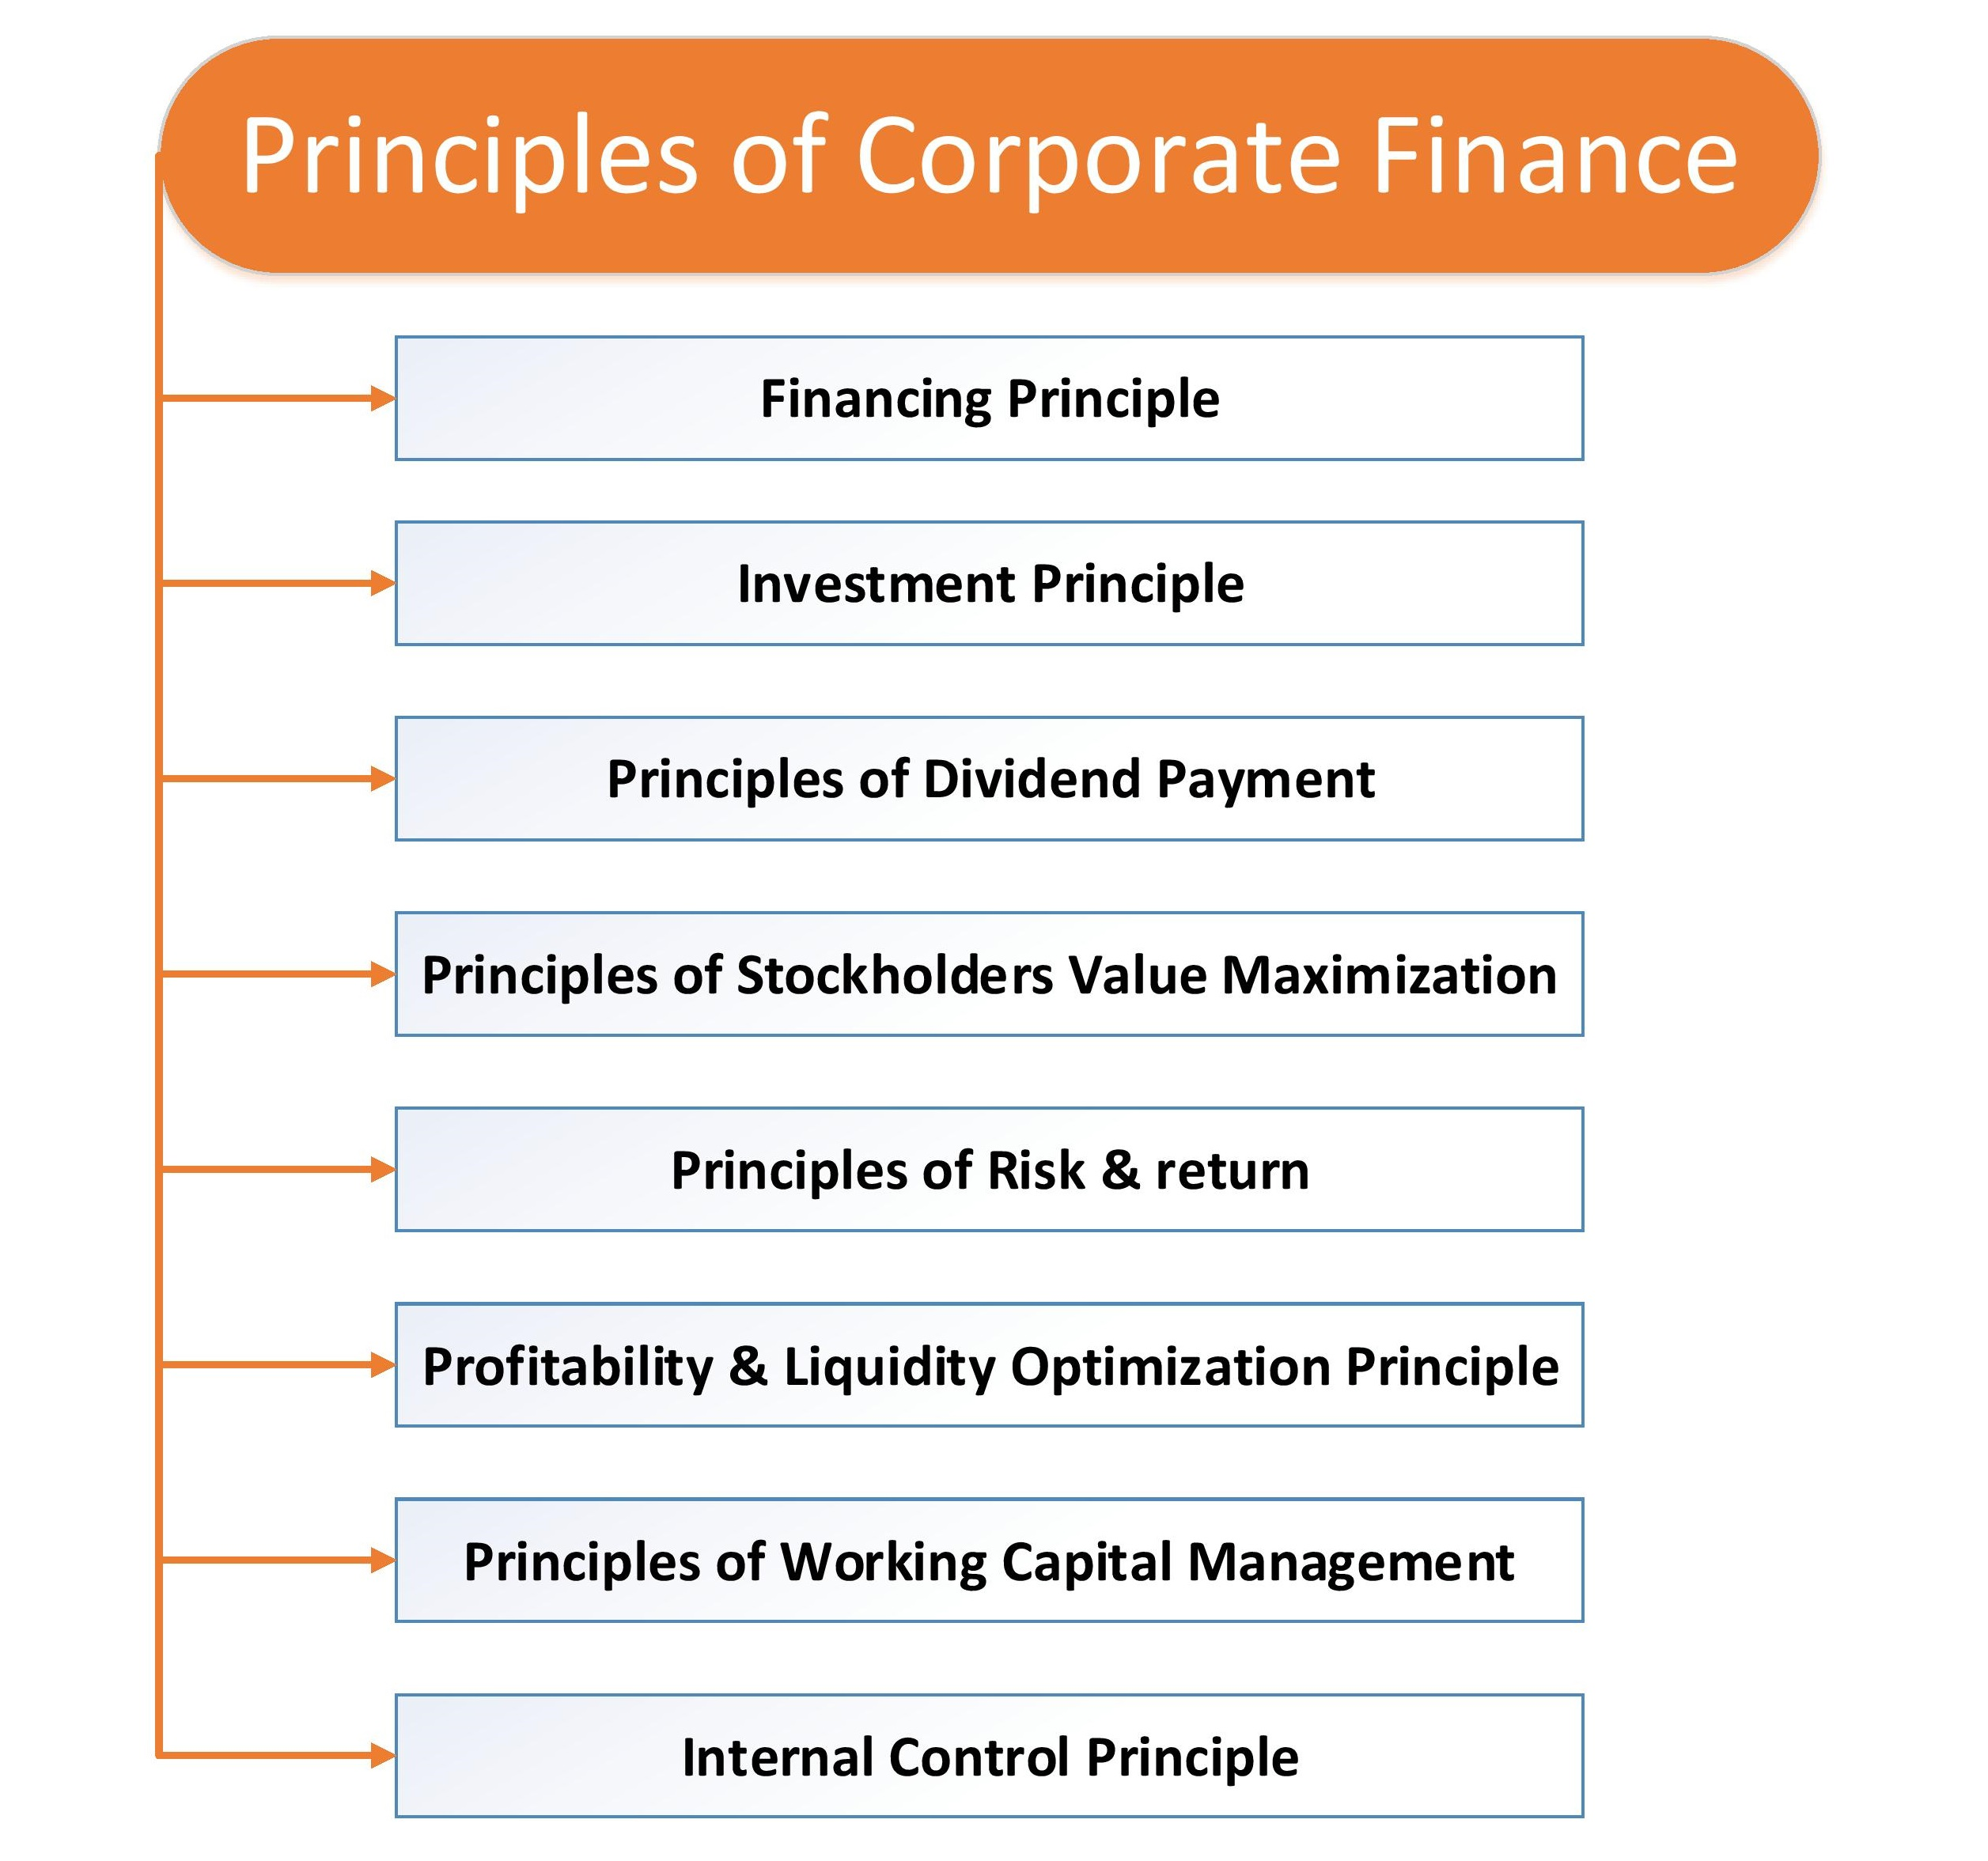 8 Must Know Corporate Finance Principles by a Successful Manager